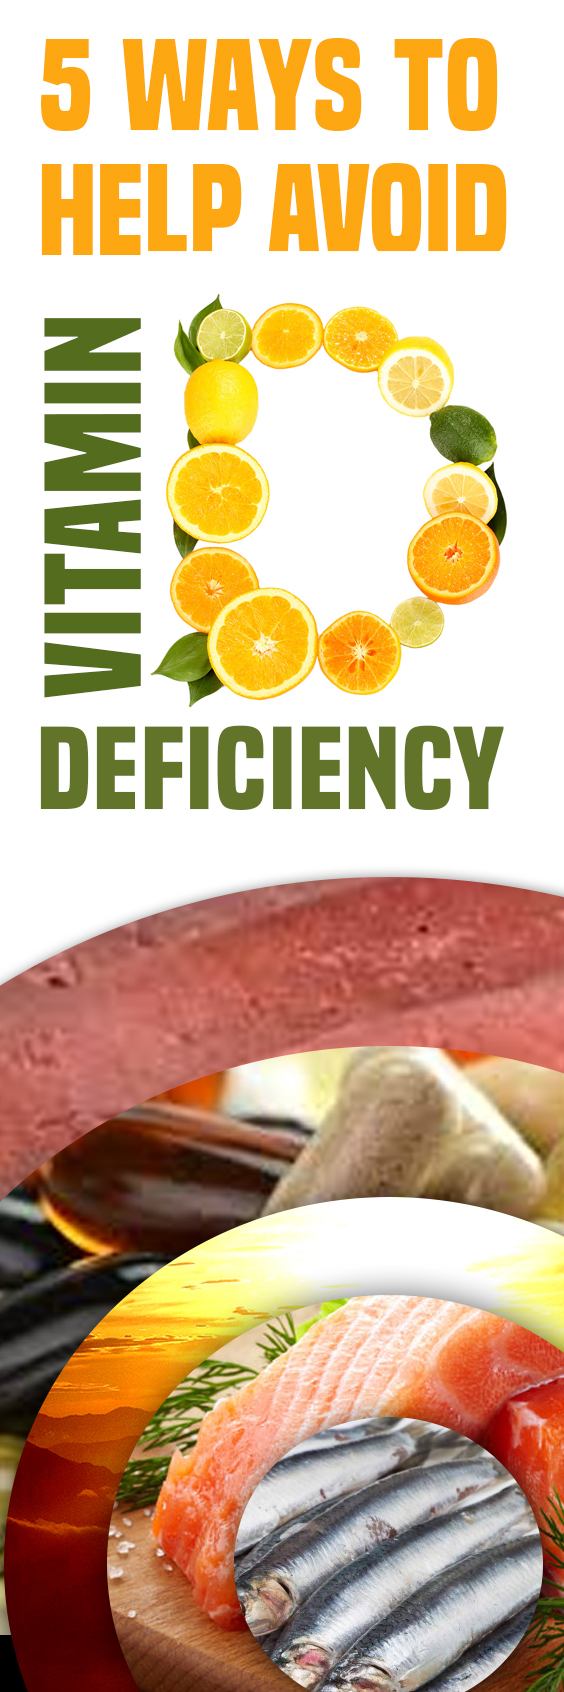 5 Ways To Help Avoid Vitamin D Deficiency (With images